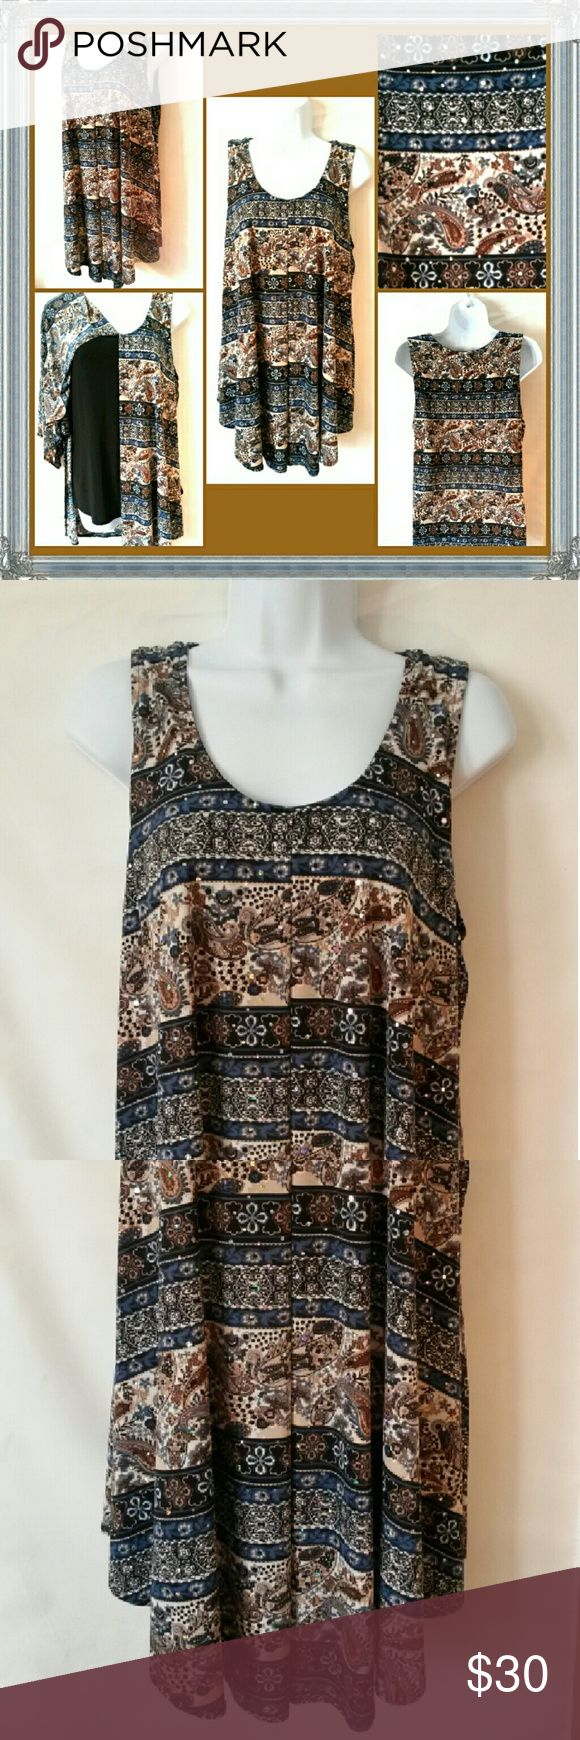 ⚠CLEARANCE SALE ⚠ Beautiful Womens Top Excellent conditions Size is M but will fit a L also Stretchy Brittany Black Tops